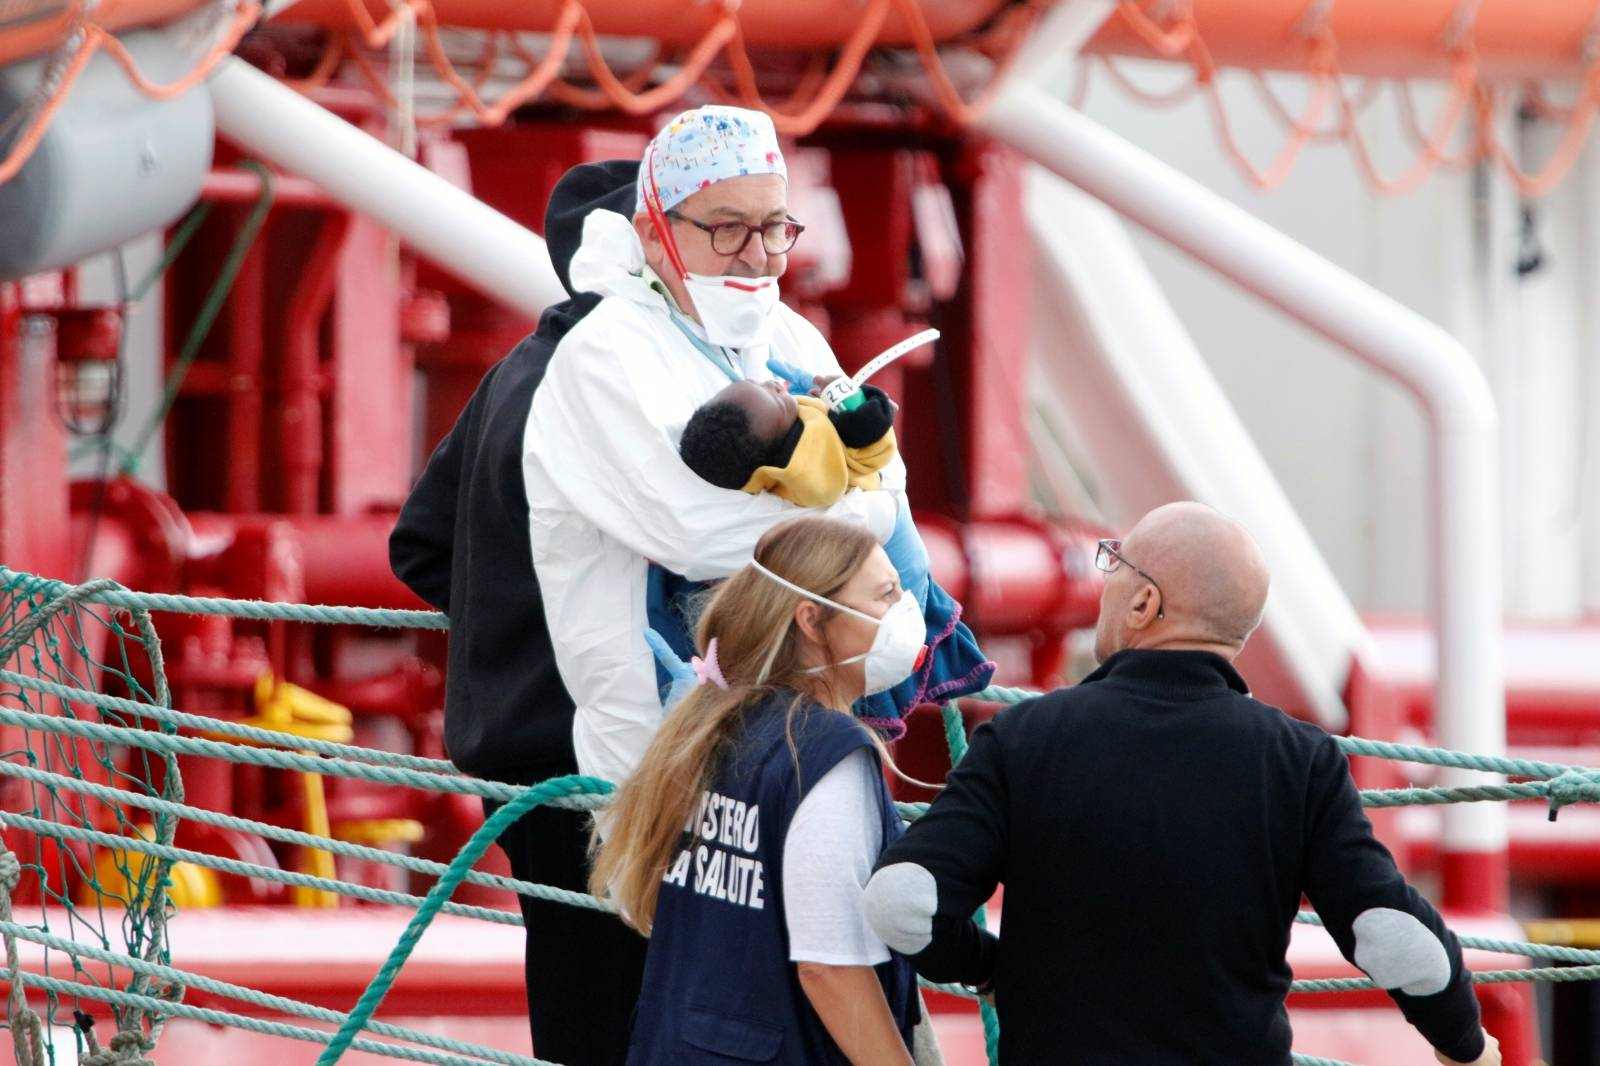 An Italian doctor at the Pozzallo port, Vincenzo Morello carries a child as migrants disembark at the port after spending nearly two weeks on board the Medecins Sans Frontieres (MSF)-operated Ocean Viking